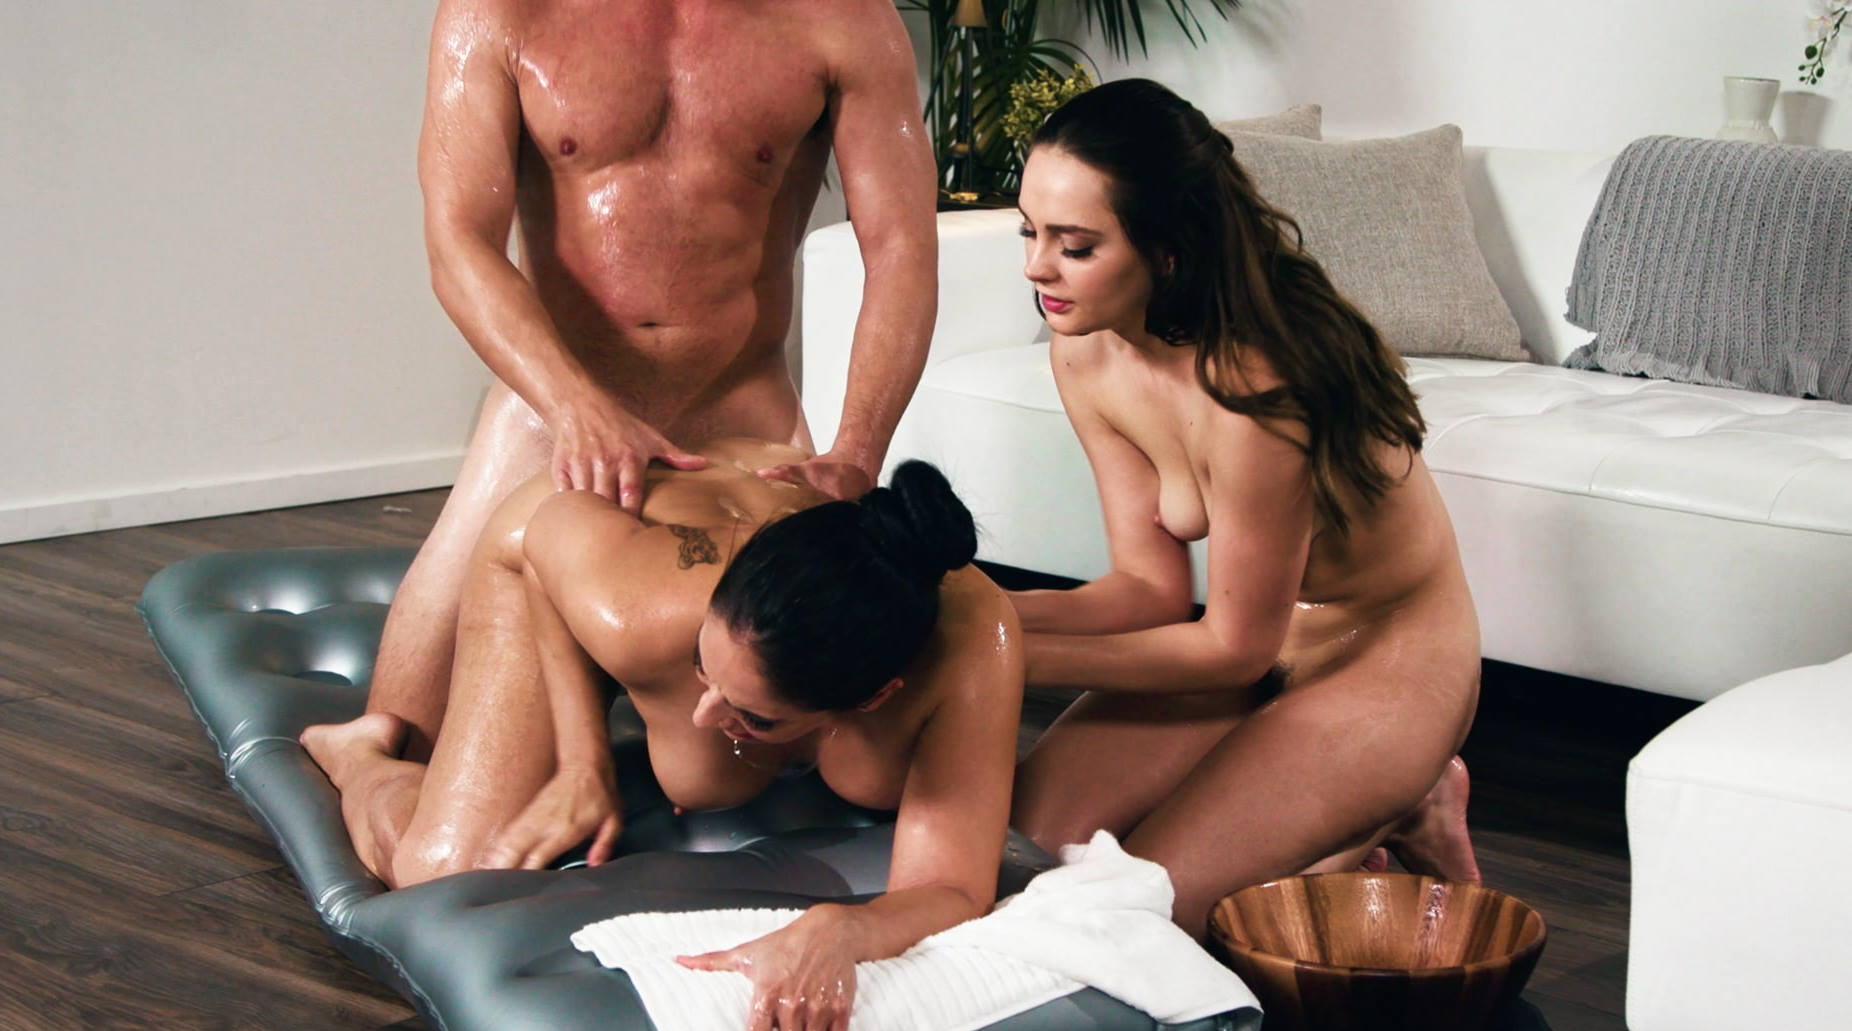 Lubed masseuses spreading wide and riding cock in threesome